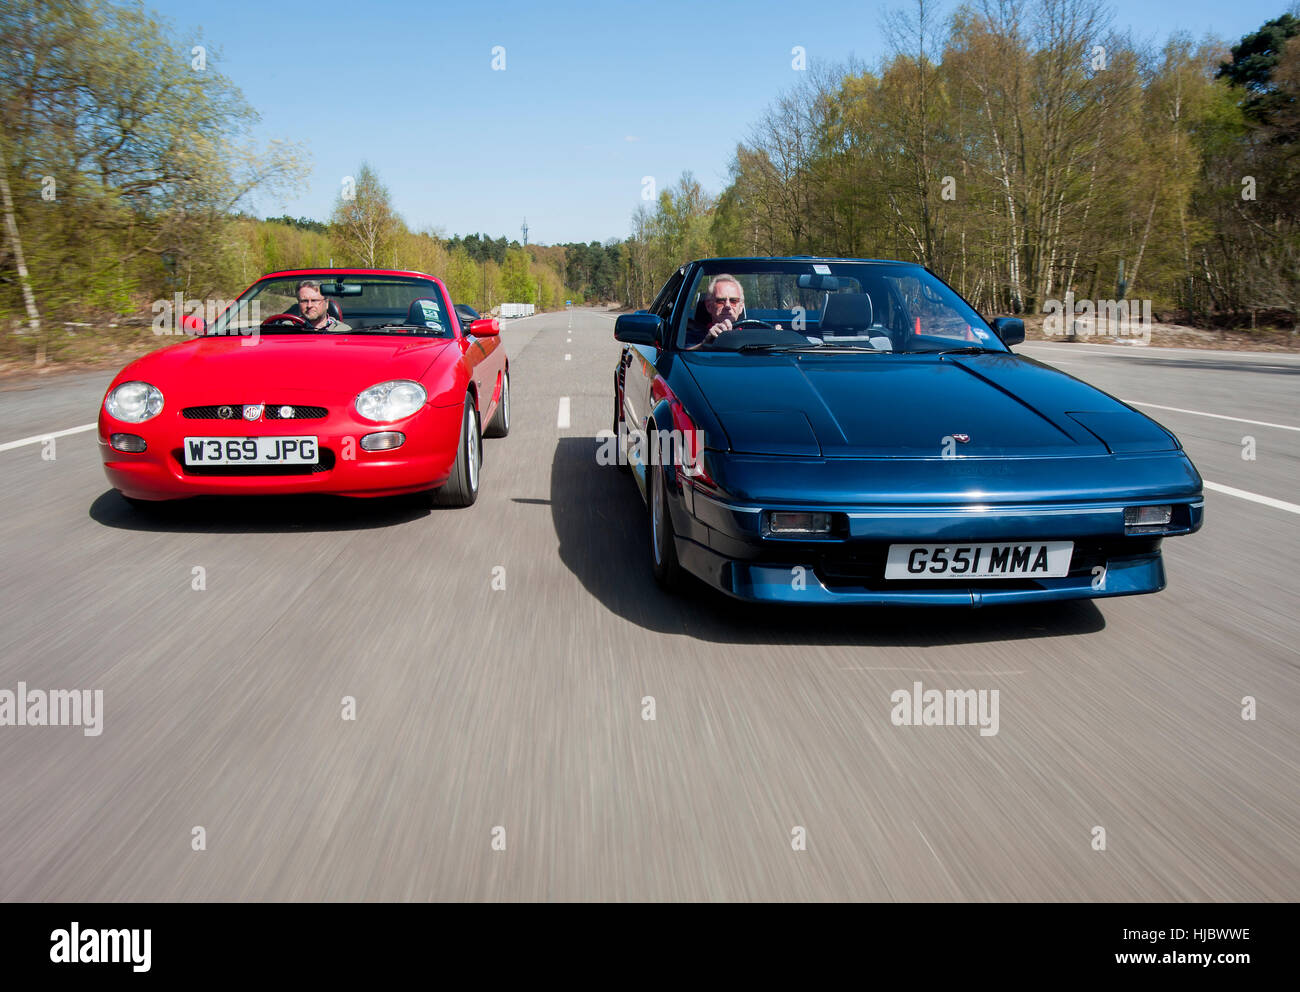 MGF and T-top Mk1 Toyota MR2 mid engine open top sports cars driving together on a summers day - Stock Image